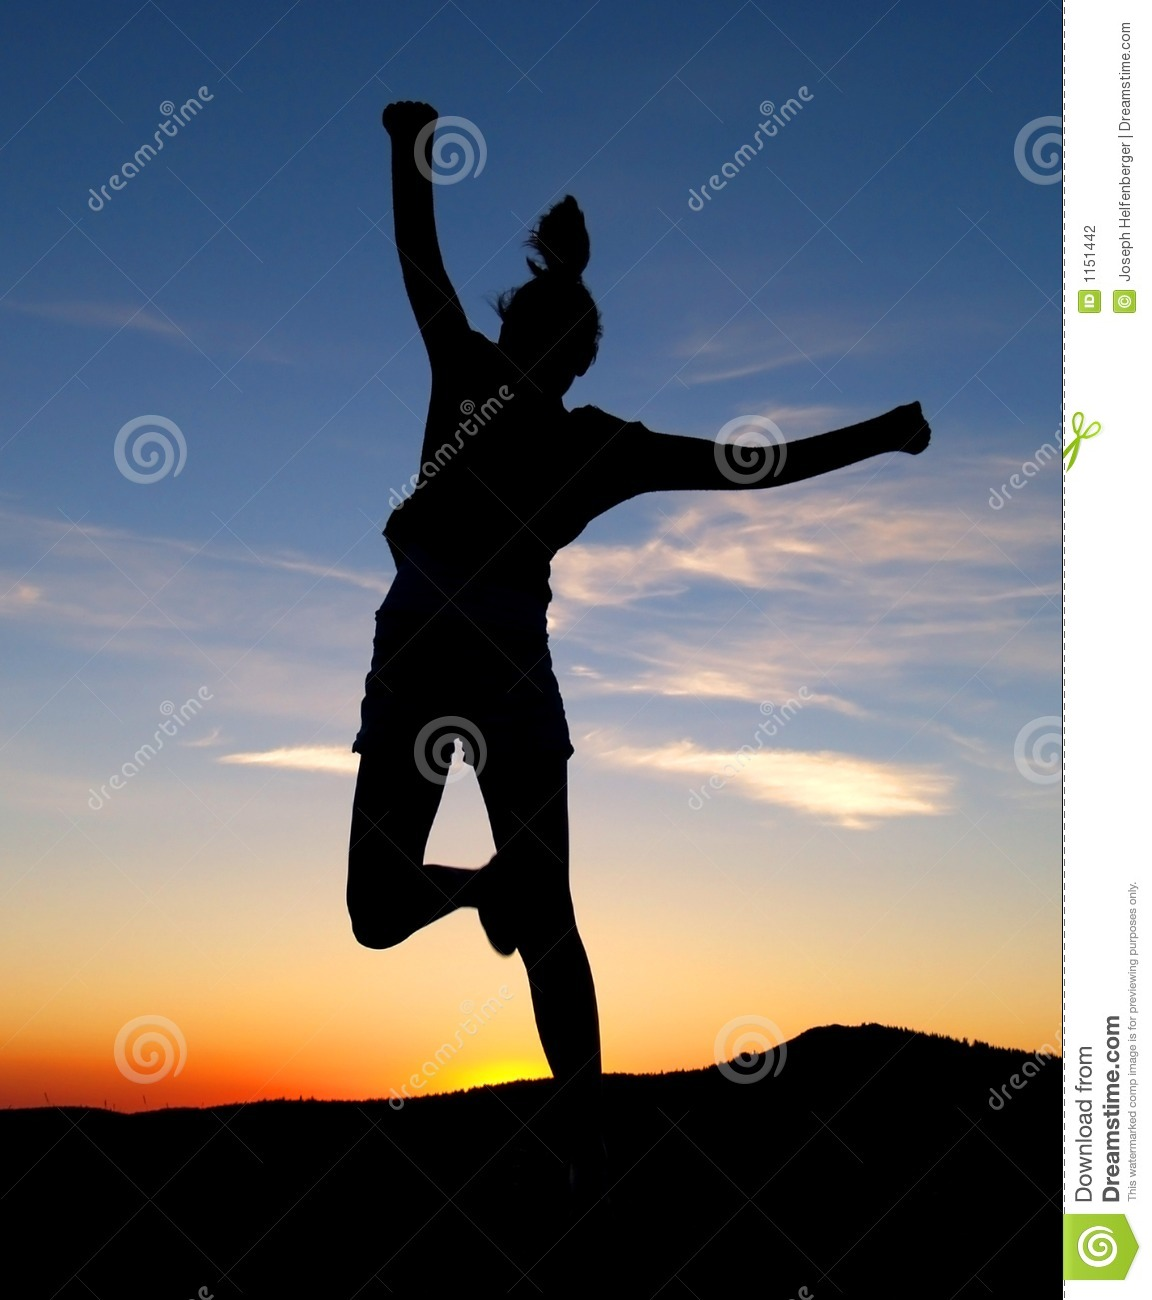 happy girl runs and jumps in the air against the sunset.